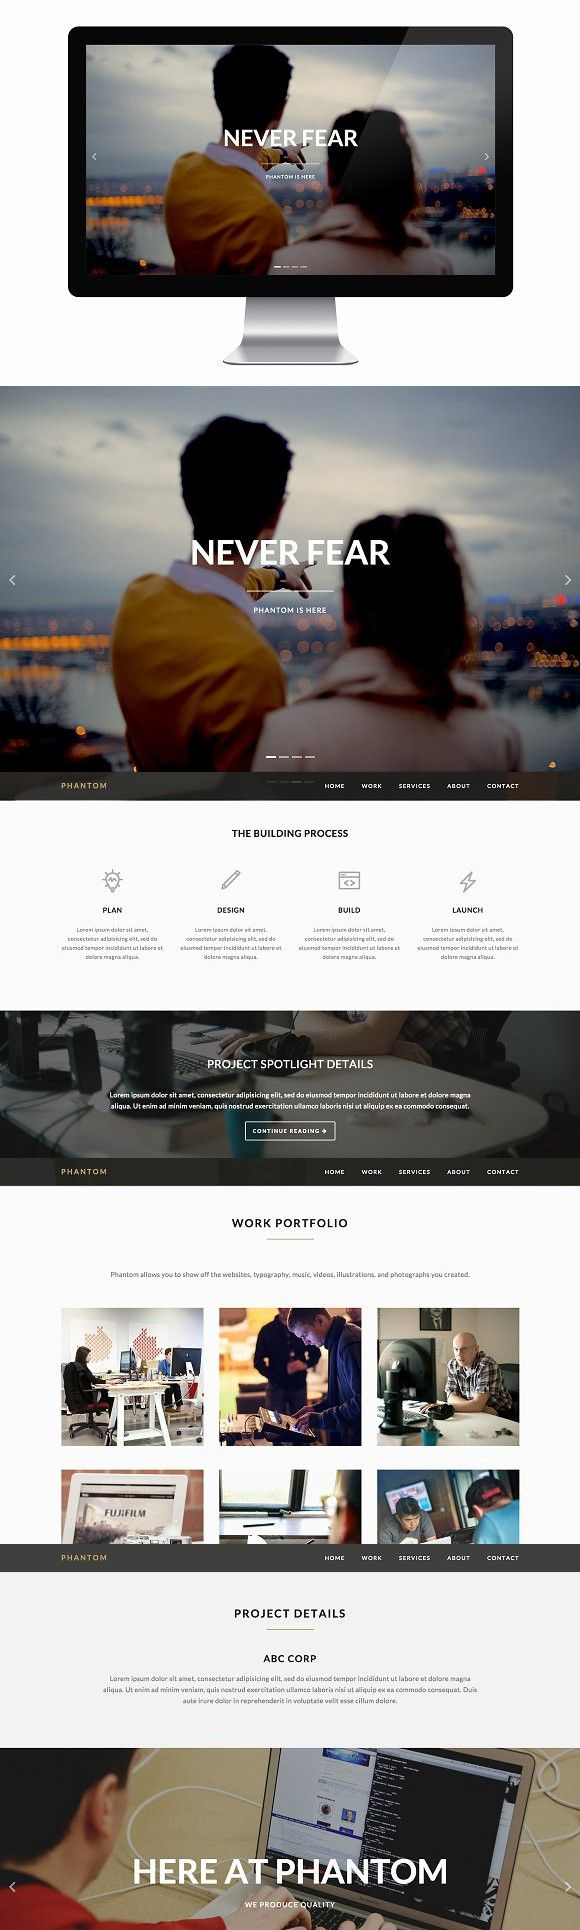 717 best HTML/CSS Themes images on Pinterest | Templates, Bamboo ...